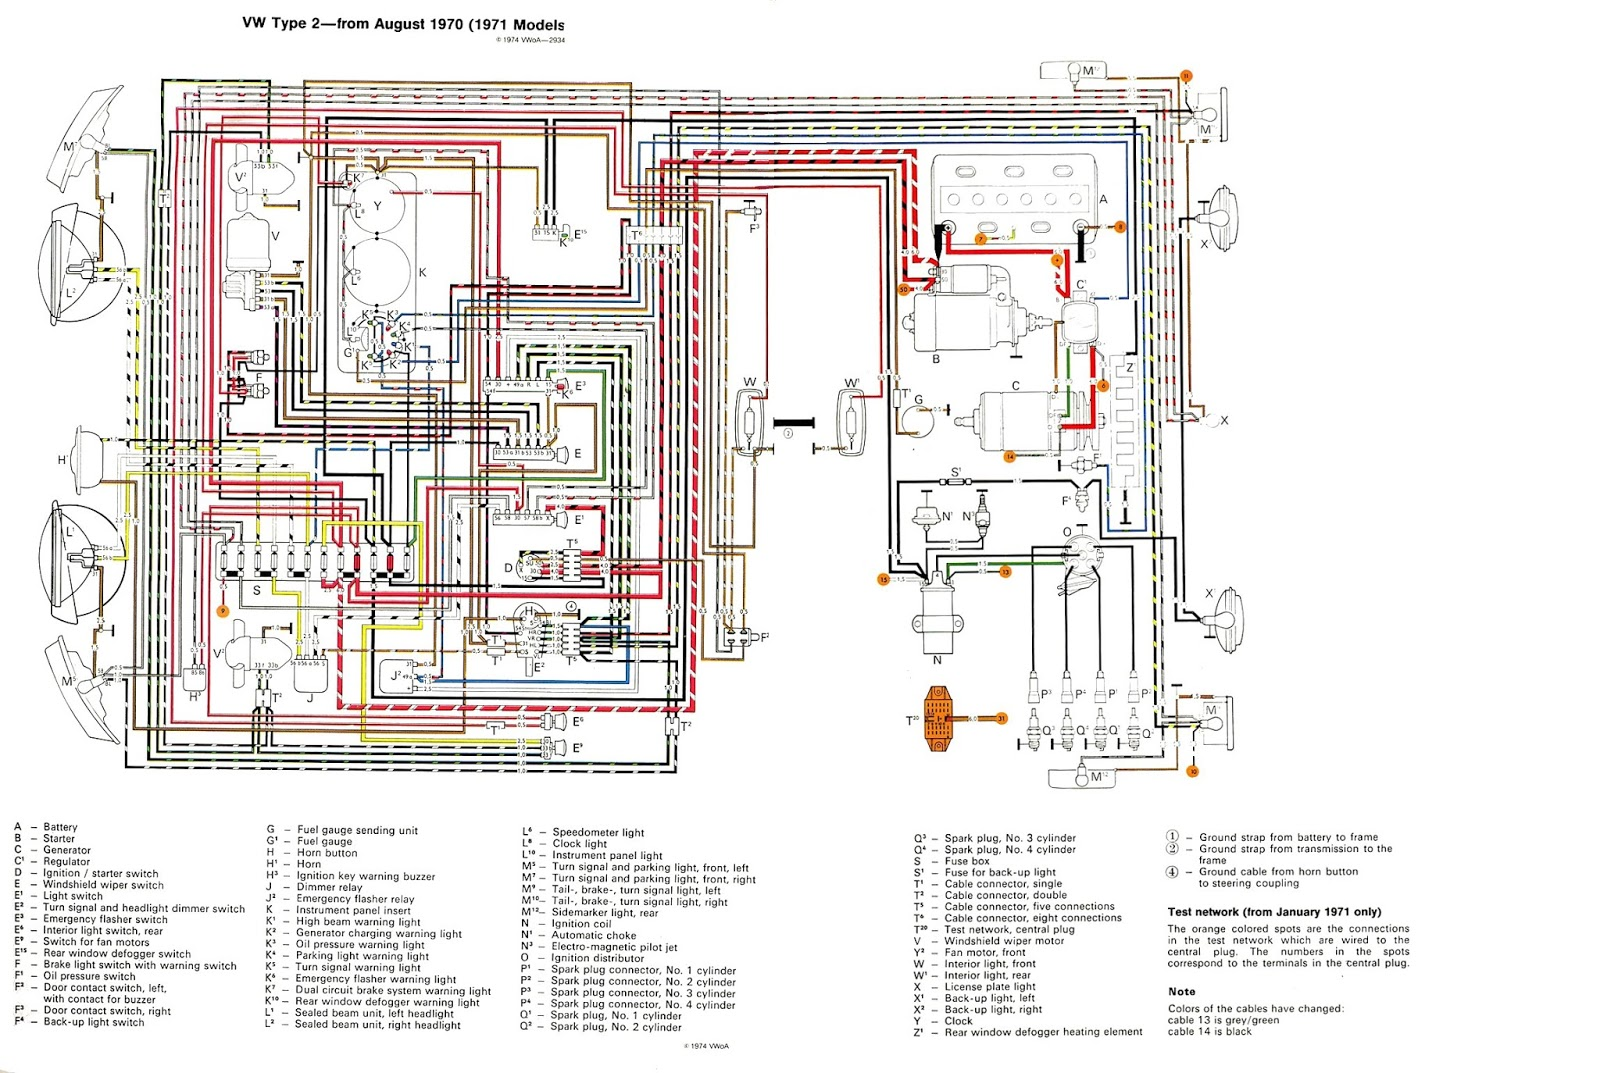 Vw Subaru Conversion Engine Wiring Harness Library Diagram While Busy The Is Readable Components Are Accurately Drawn And There